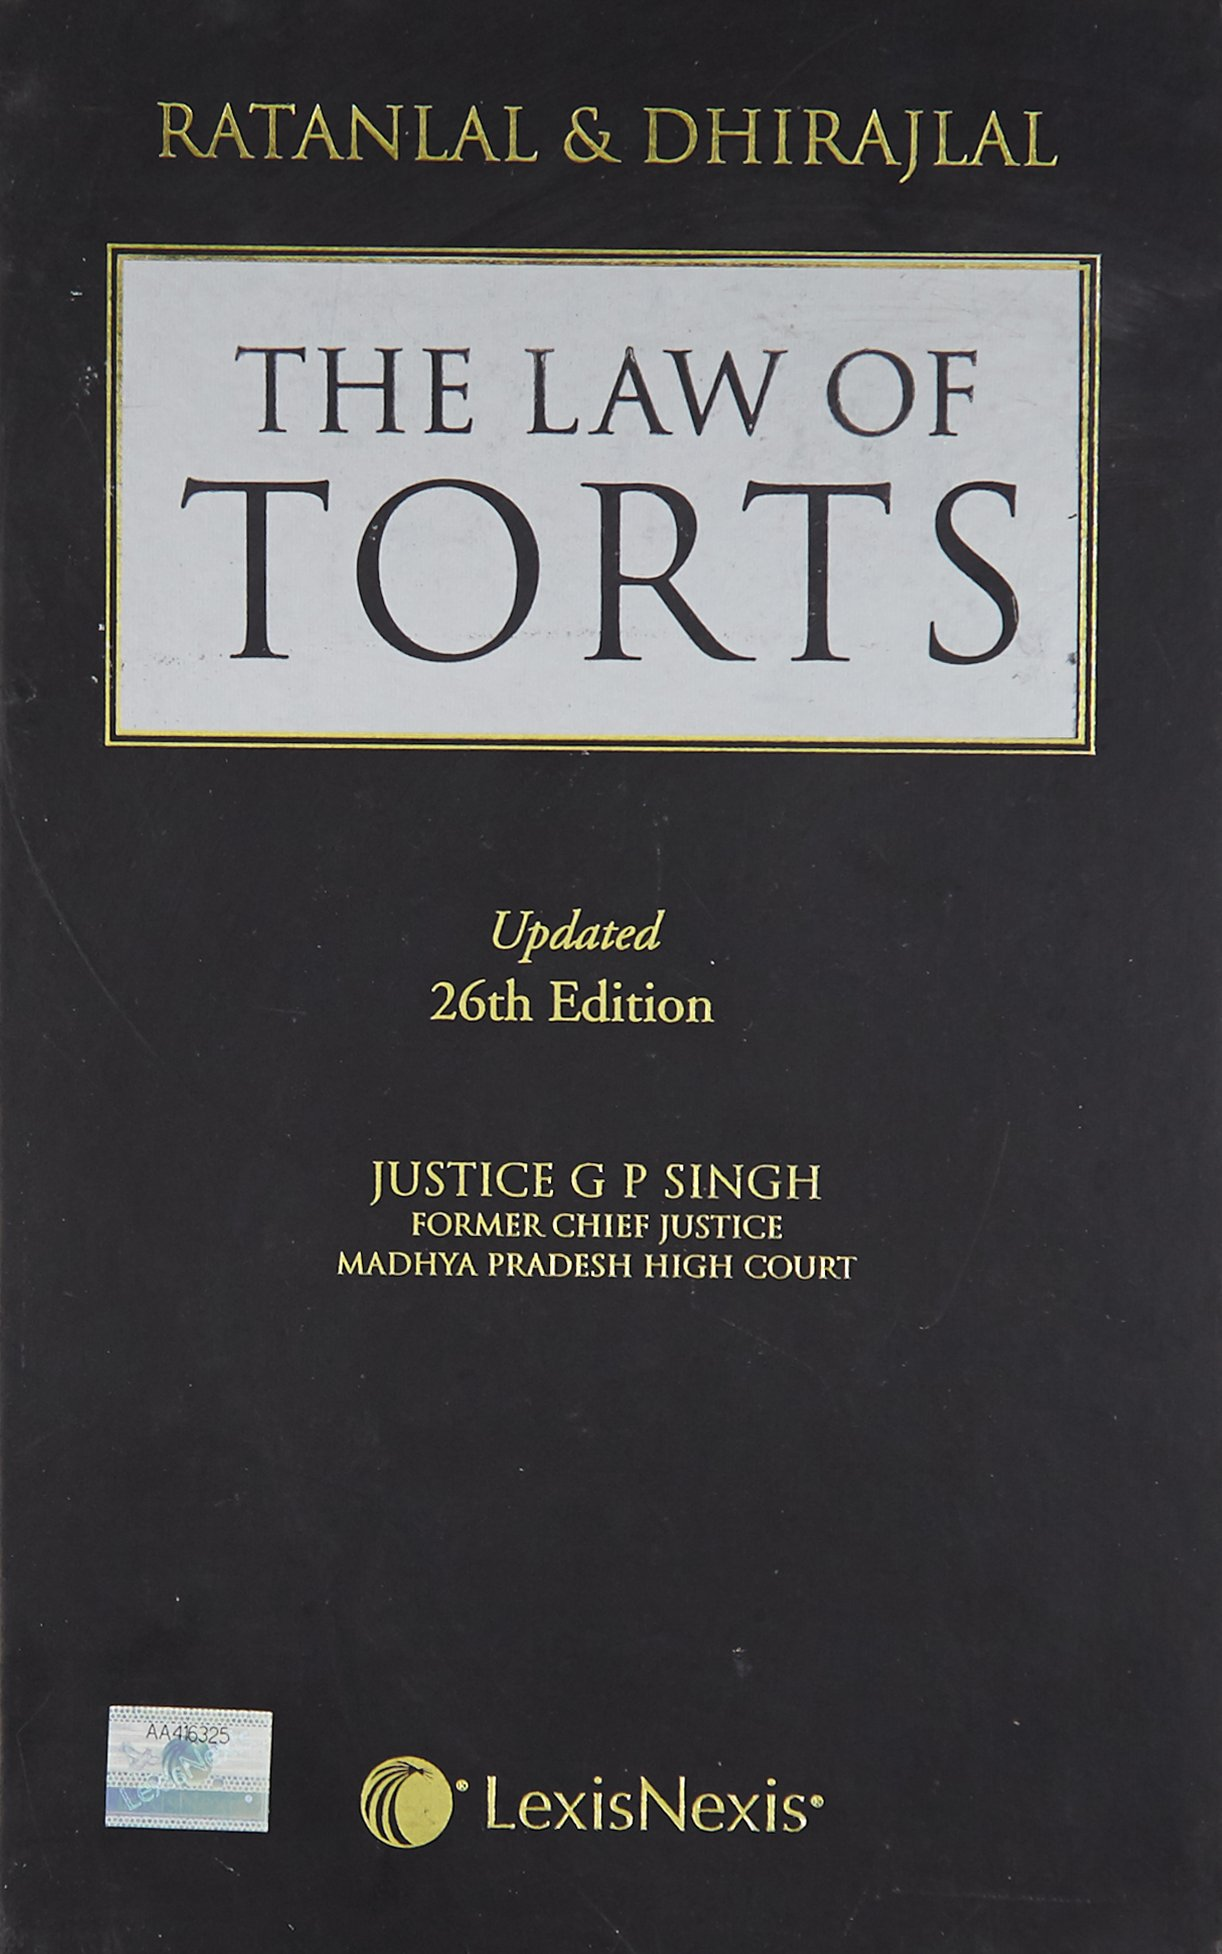 Ratanlal and Dhirajlal The Law of Torts Updated 26th Ed